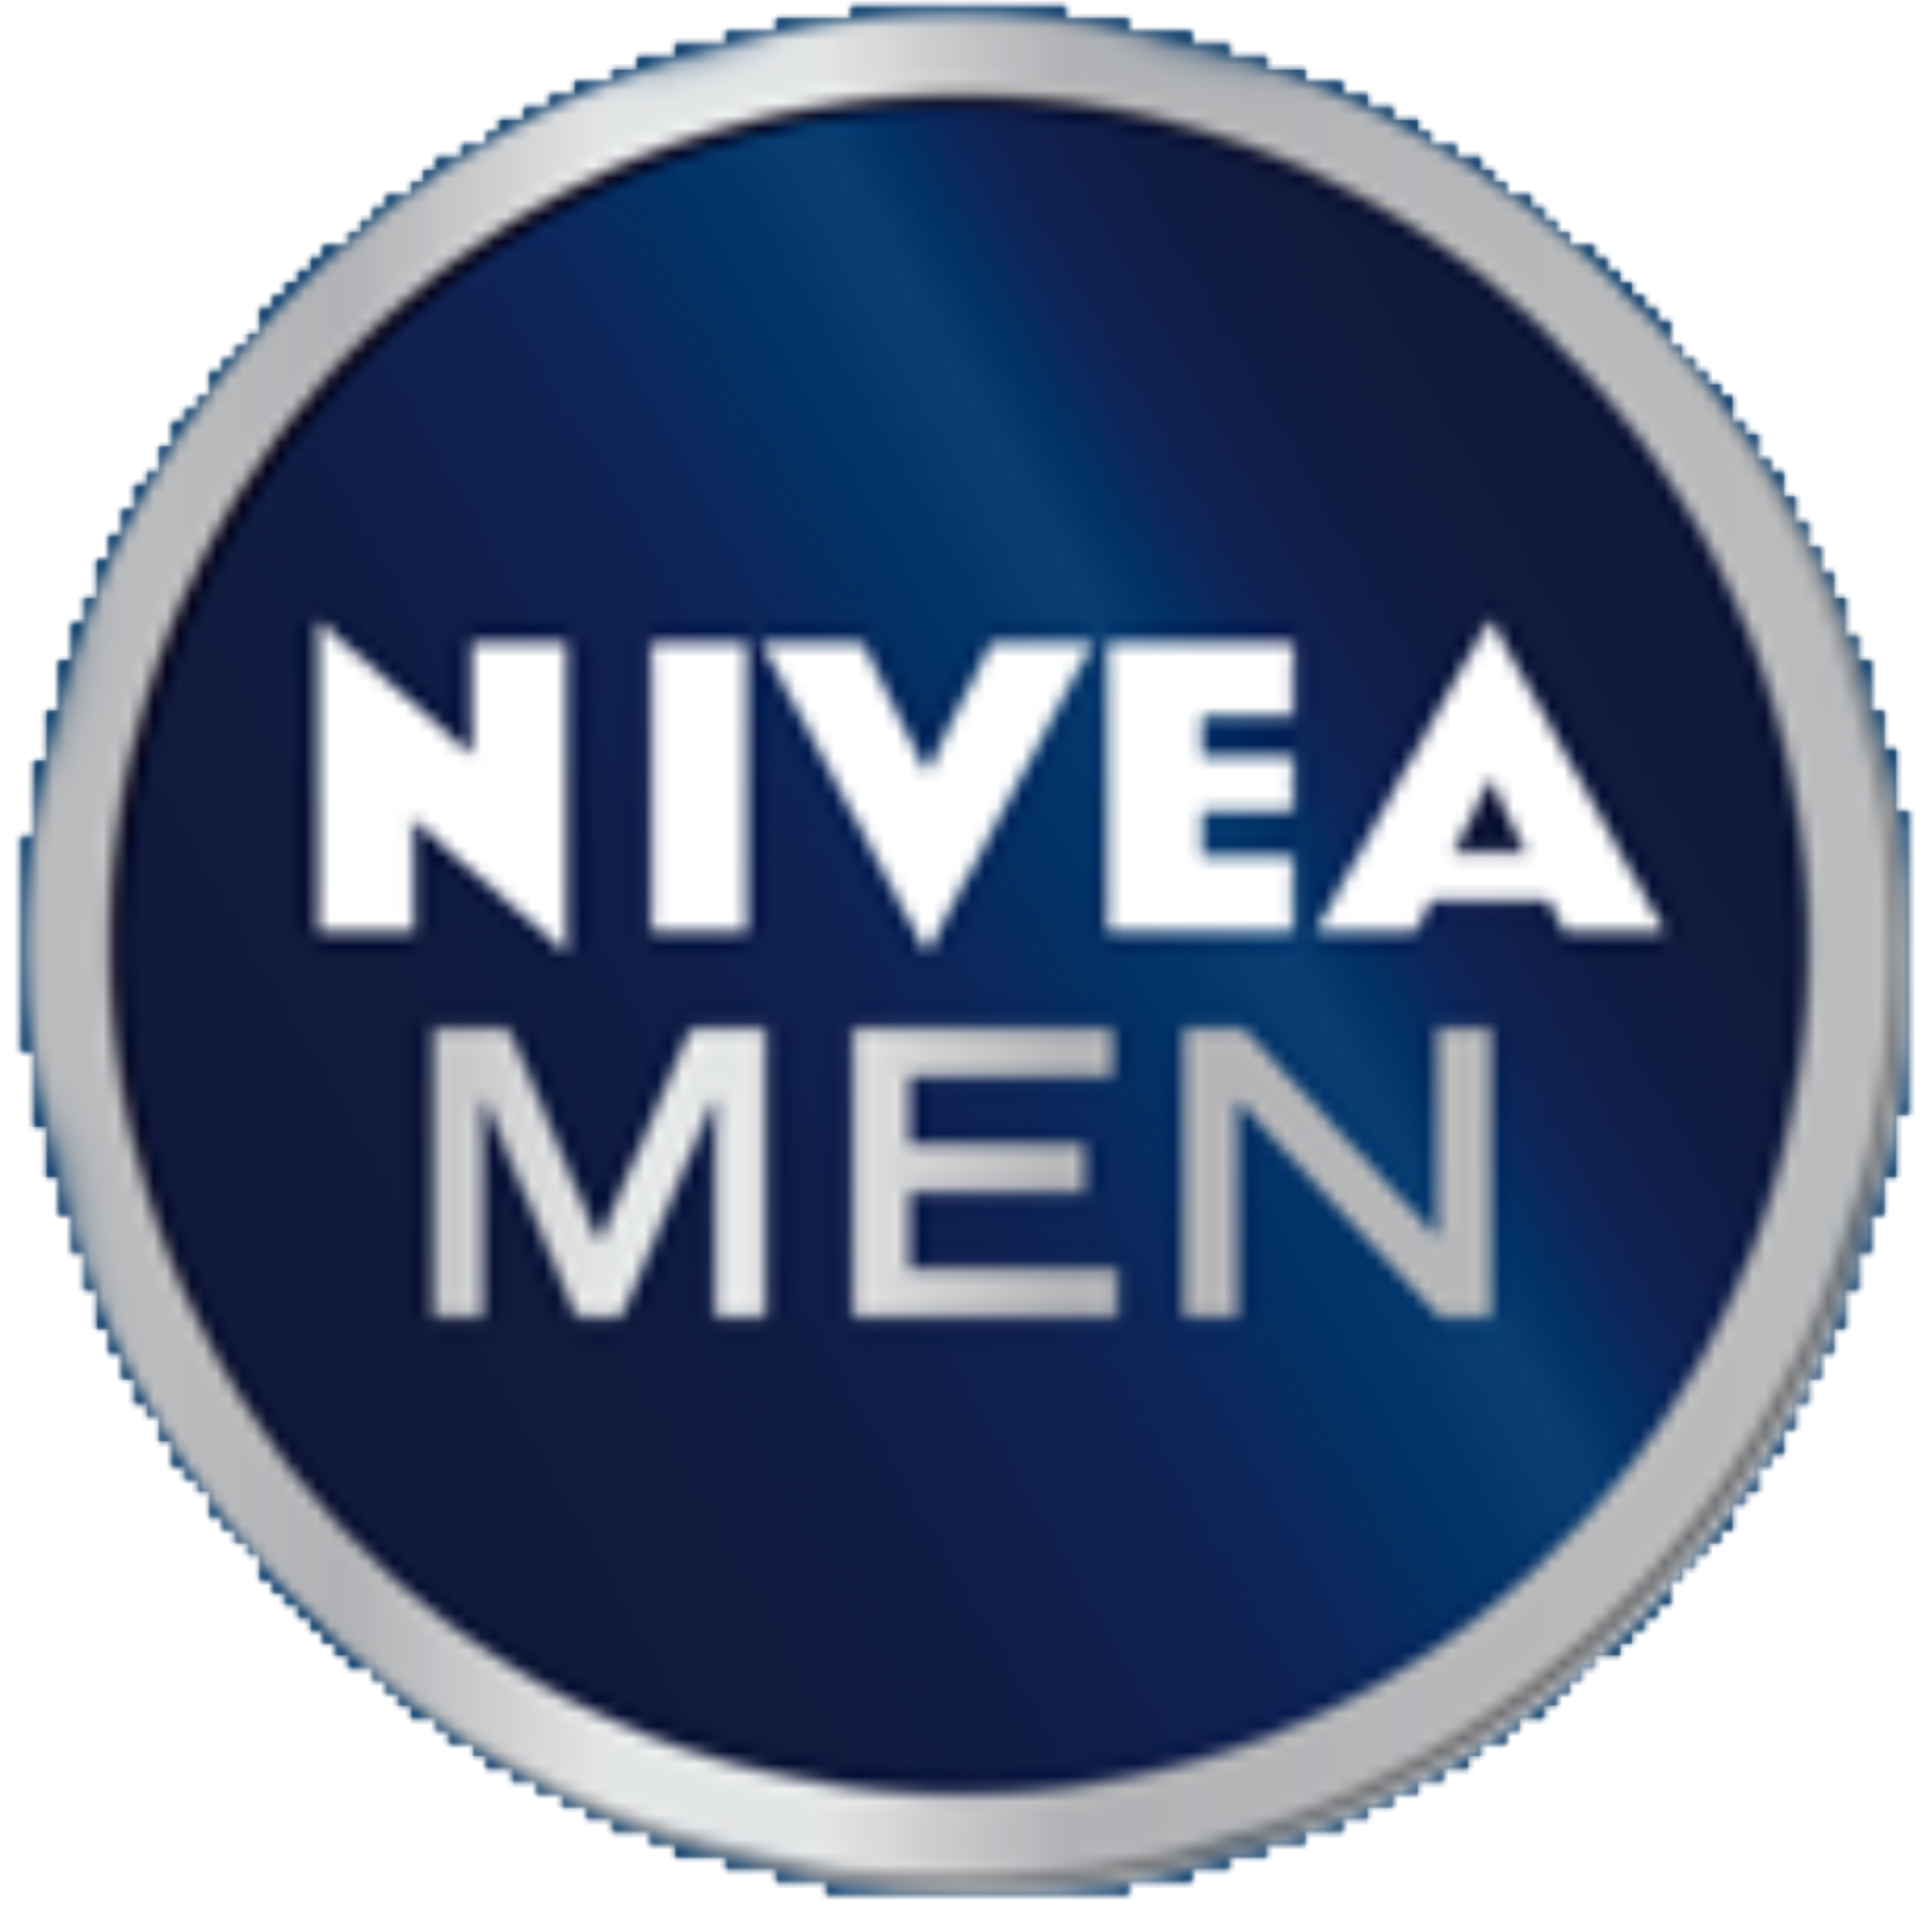 Nivea Men logo 2013